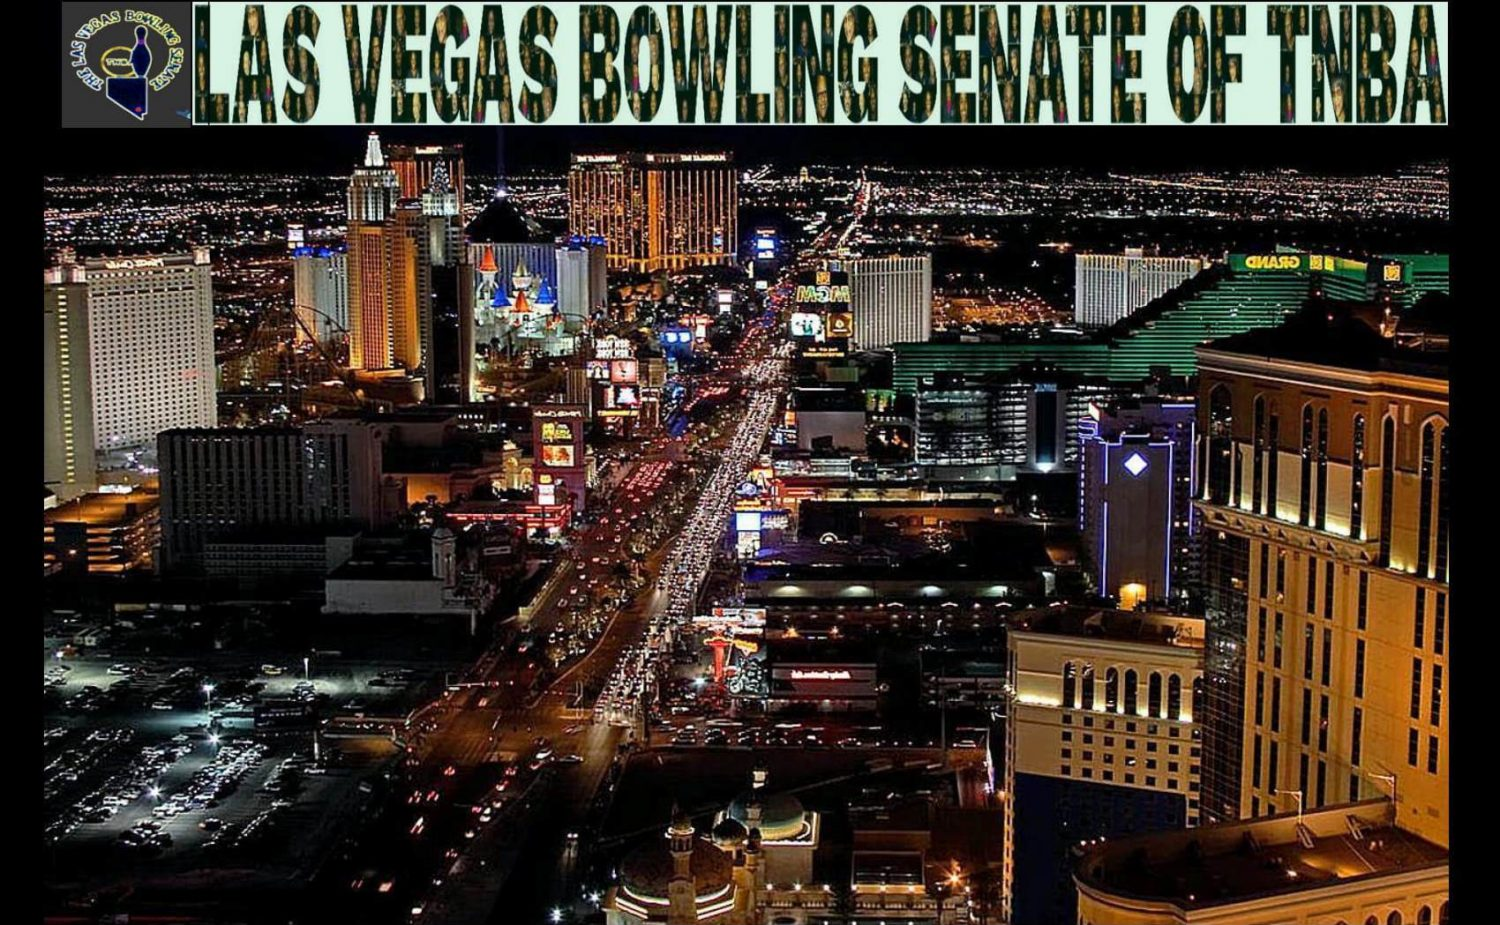 Las Vegas Bowling Senate of TNBA